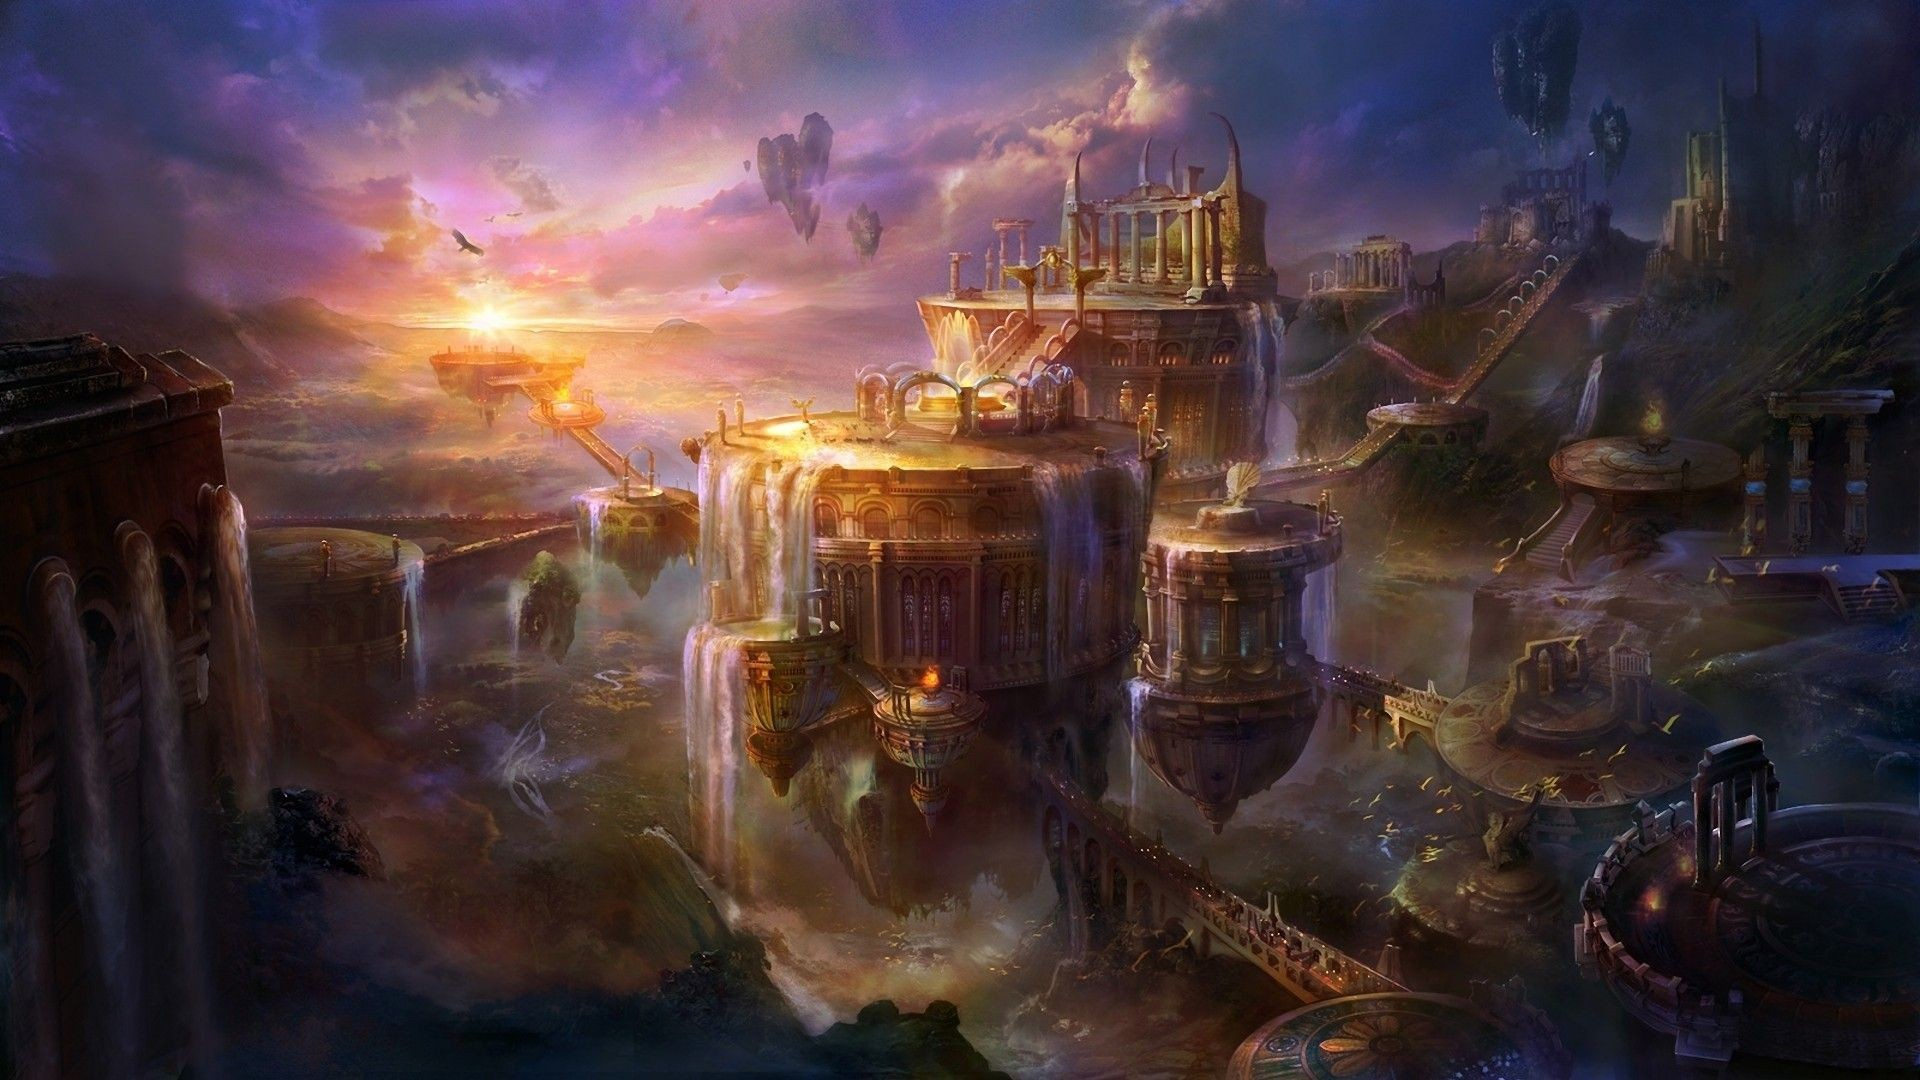 Fantasy Wallpaper Desktop Amazing Wallpaper Hd Library